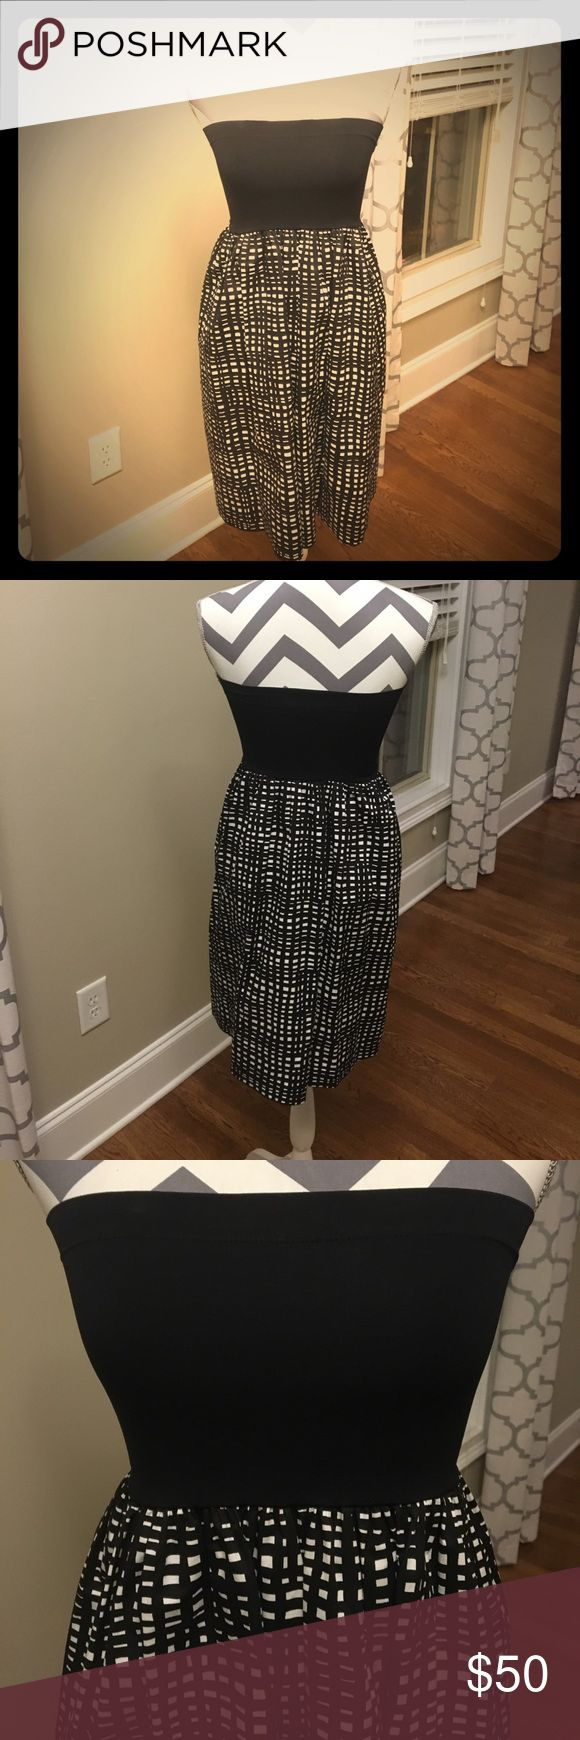 Theory black and white tube top dress, one size Theory black and white tube top dress, one size fits all. Top portion is a soft spandex material, bottom is a woven fabric. Can dress up or down, very versatile piece. You can also wear this as a skirt, 2-in-1! Gently loved and in good condition, one small place where stitching has come undone (shown in last picture). Theory Dresses Strapless